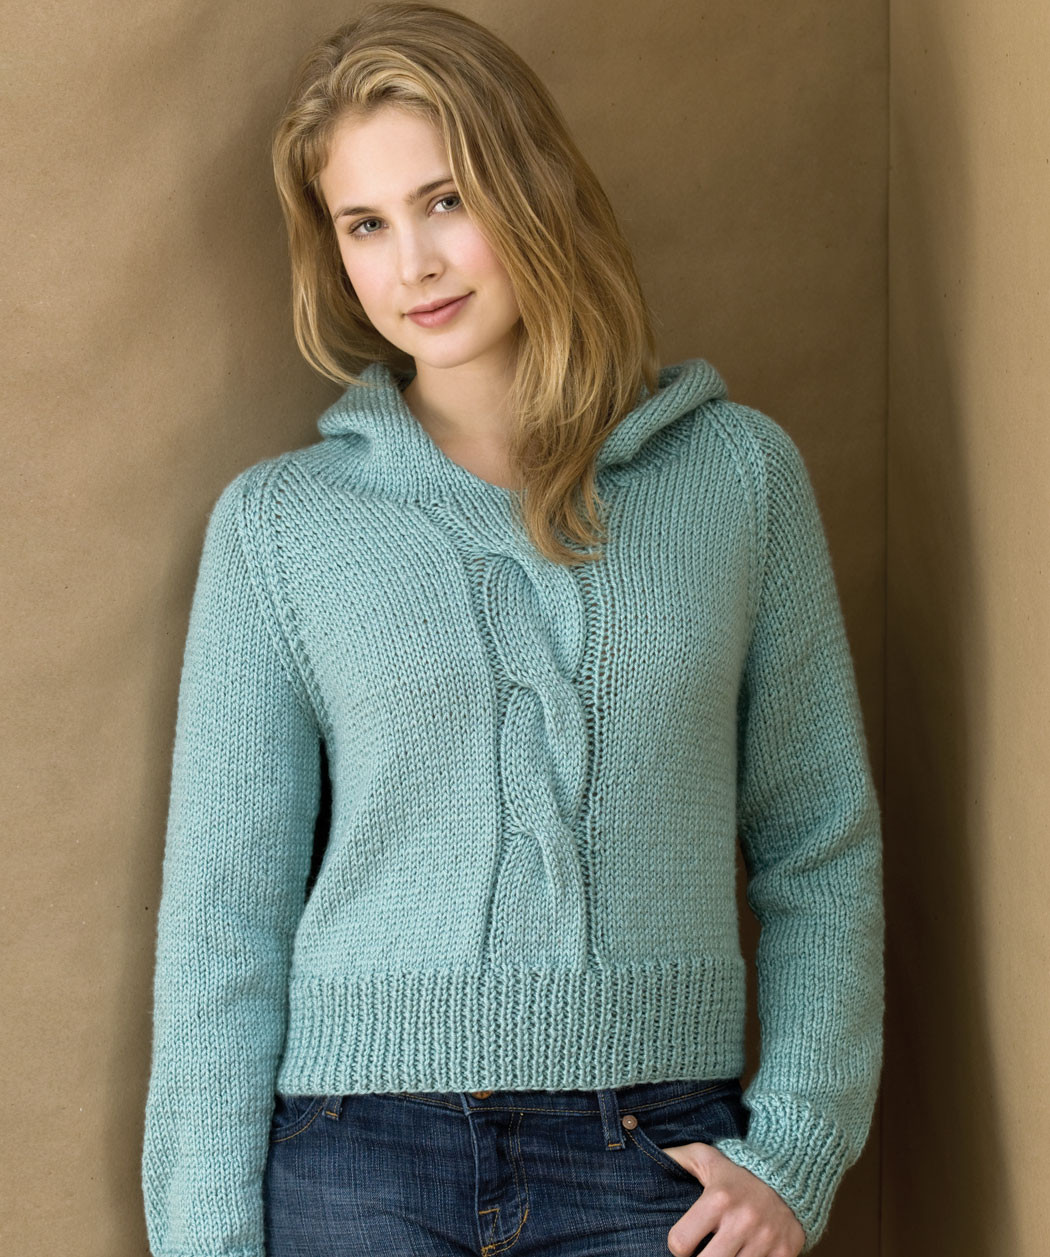 Awesome Cable Knit Sweater Patterns Cable Knit Cardigan Sweater Of Wonderful 46 Models Cable Knit Cardigan Sweater